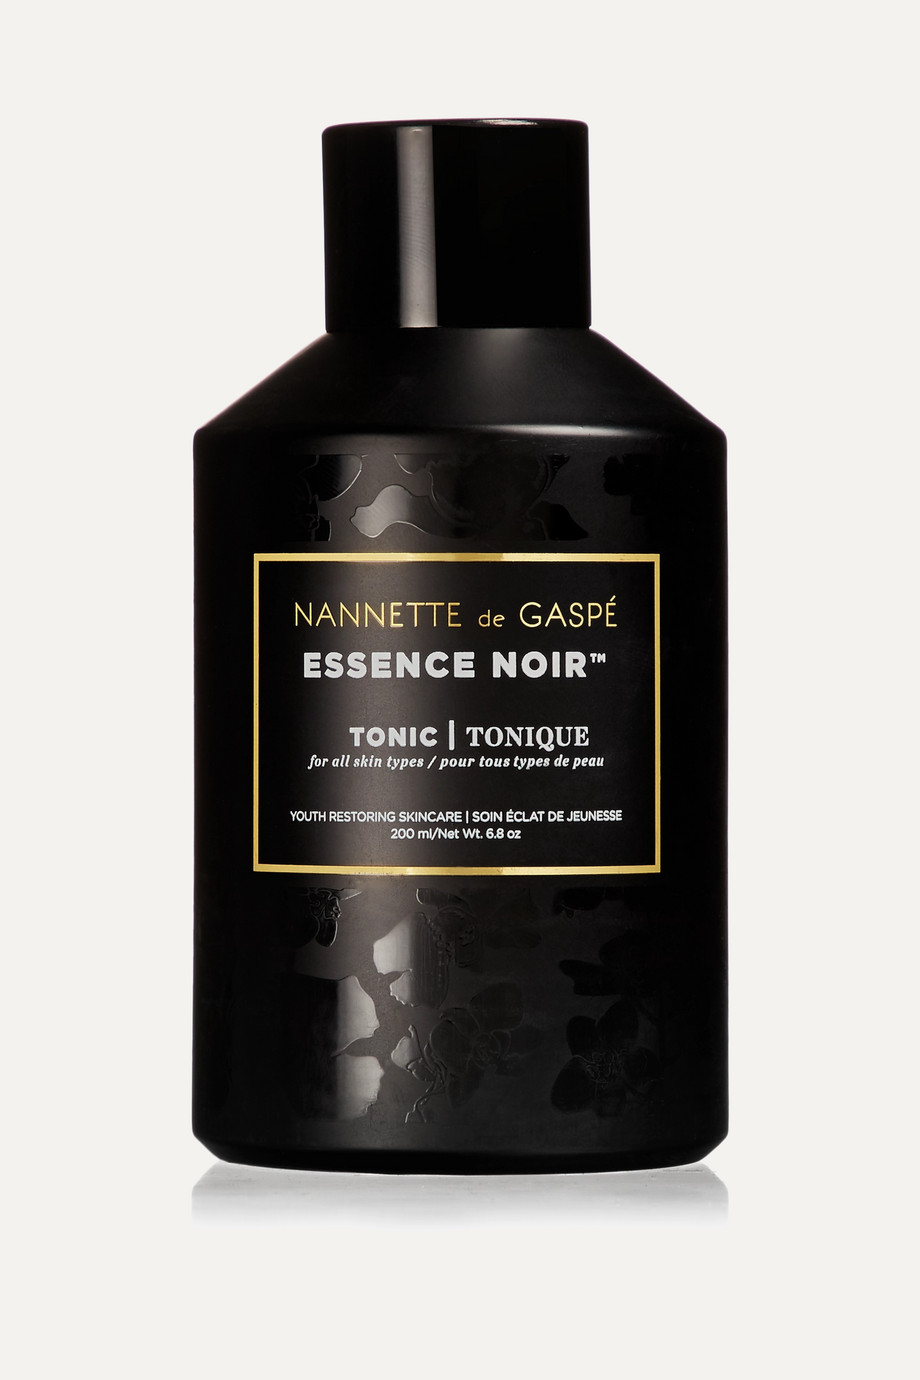 NANNETTE DE GASPÉ Art of Noir - Essence Noir Tonic, 200ml